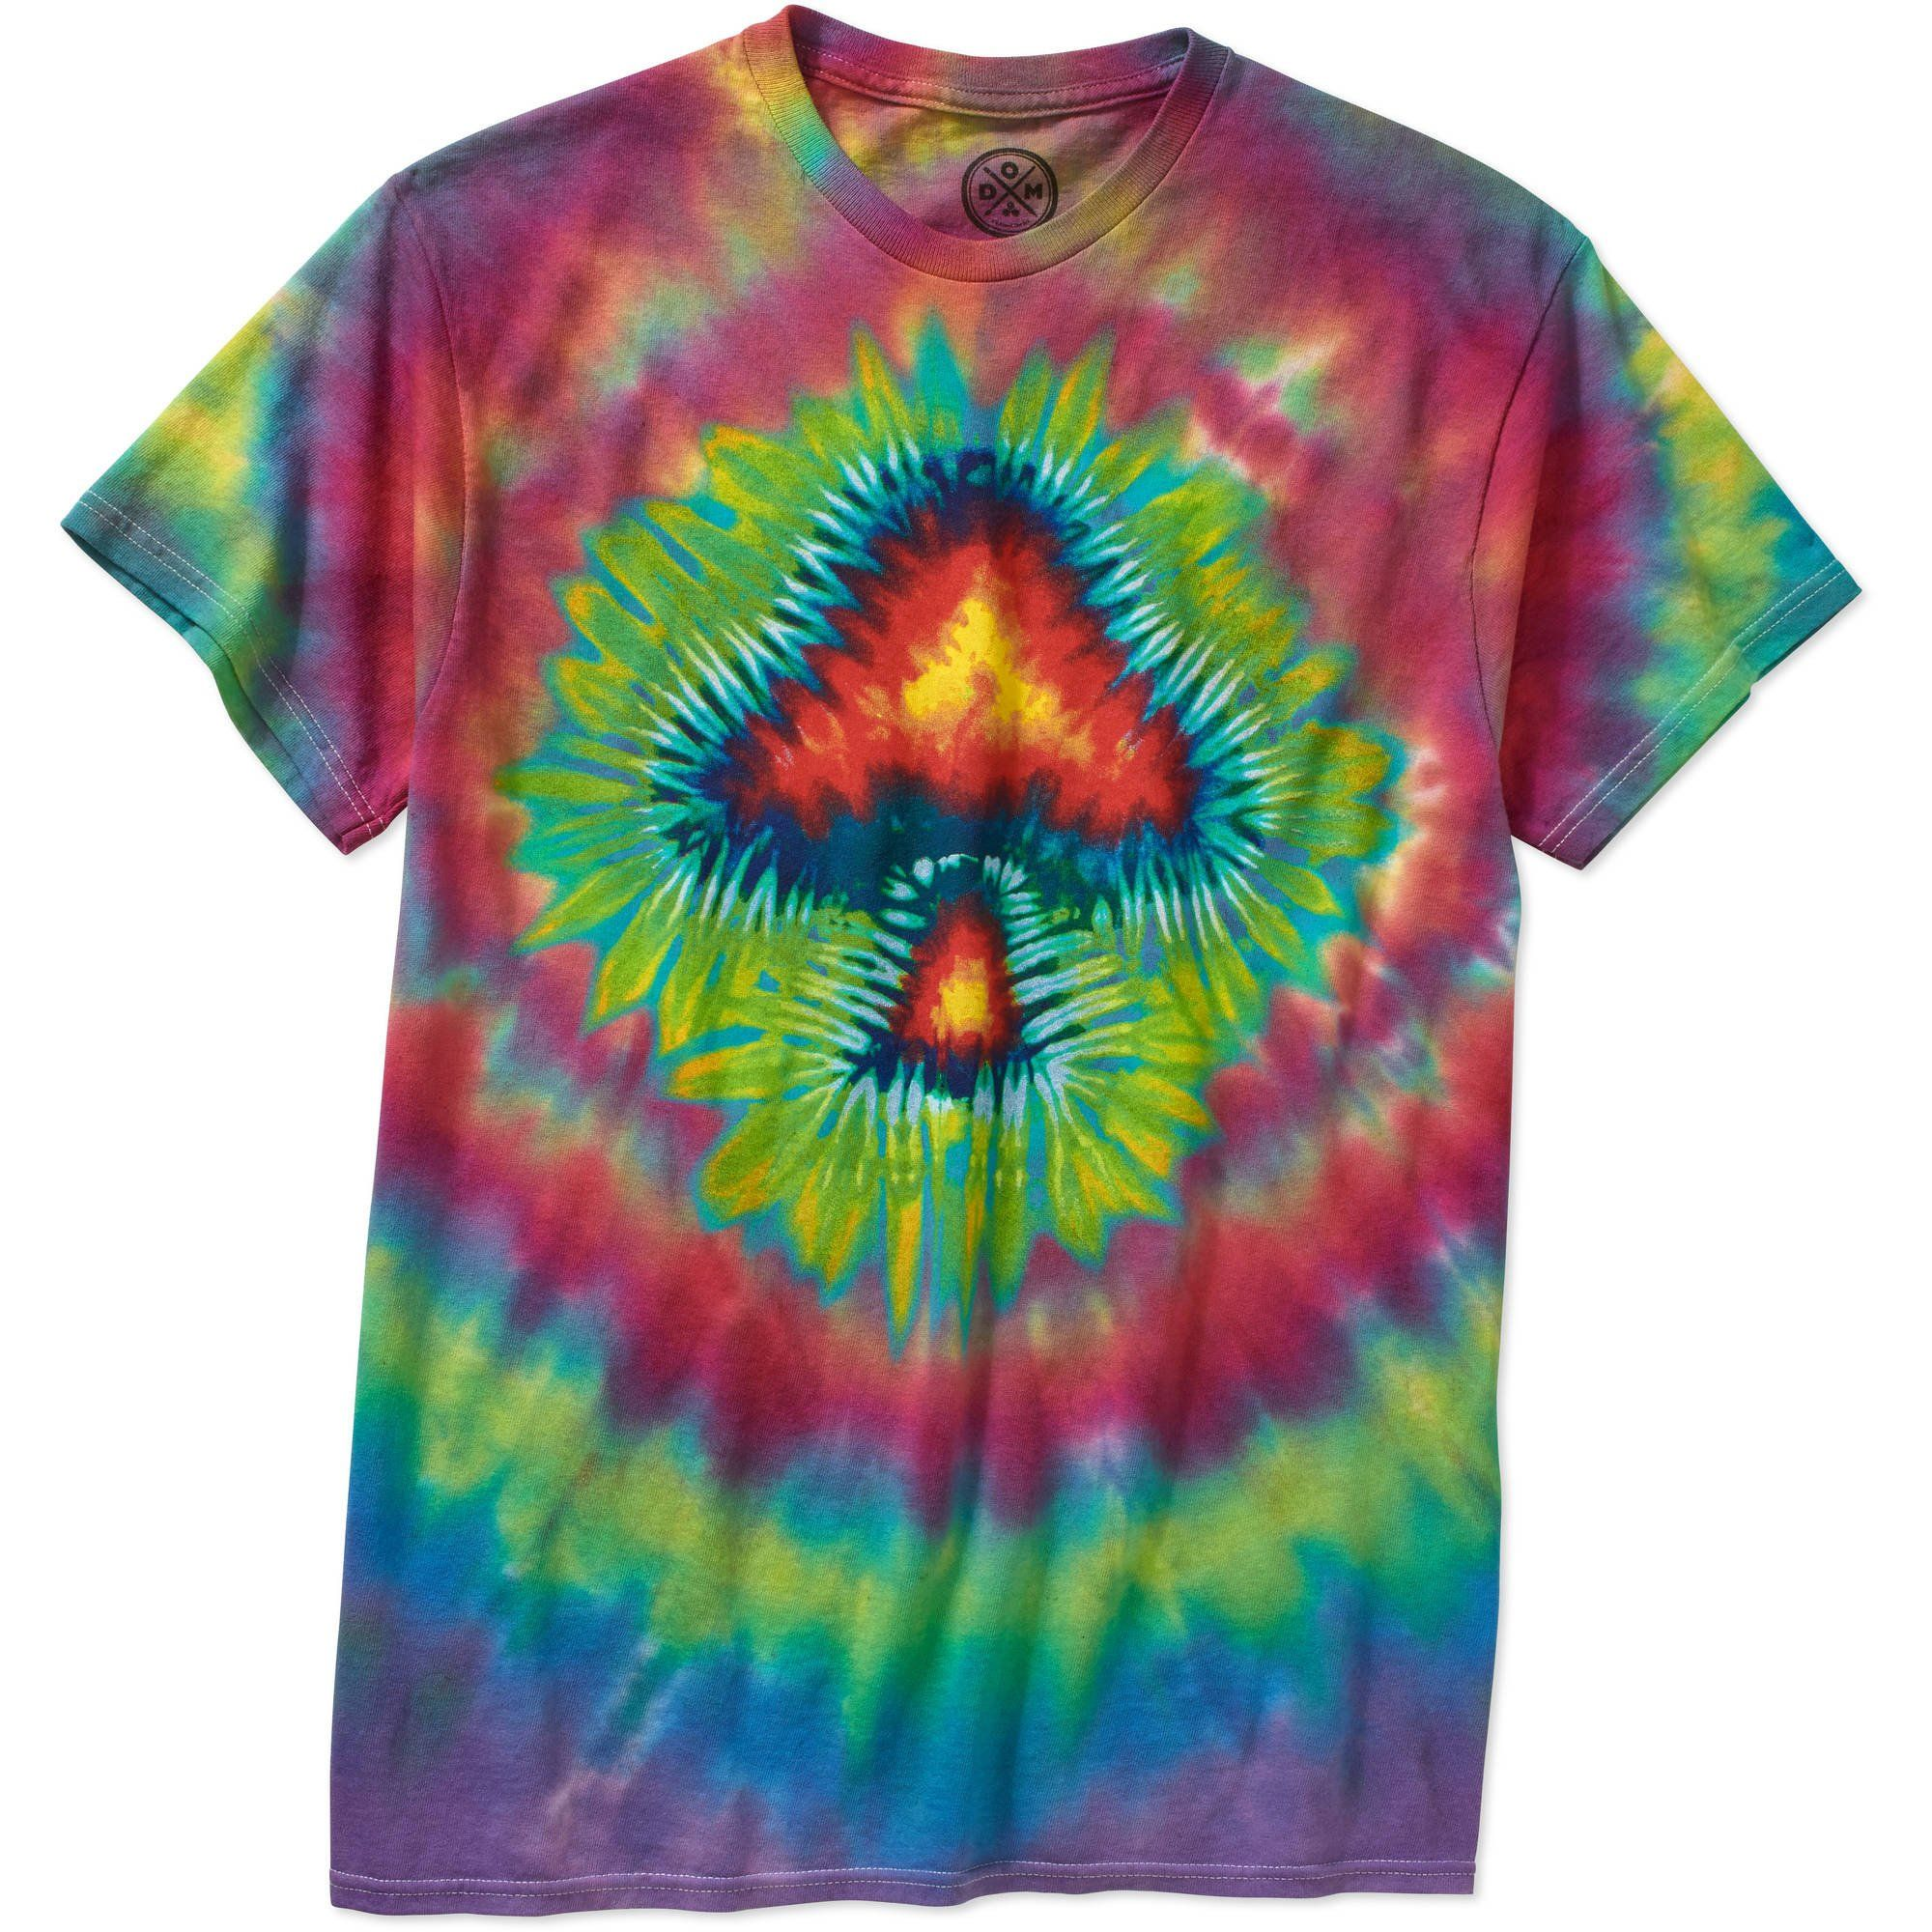 How To Tie Dye A Shirt With Food Coloring Best Of Mushroom Tie Dye